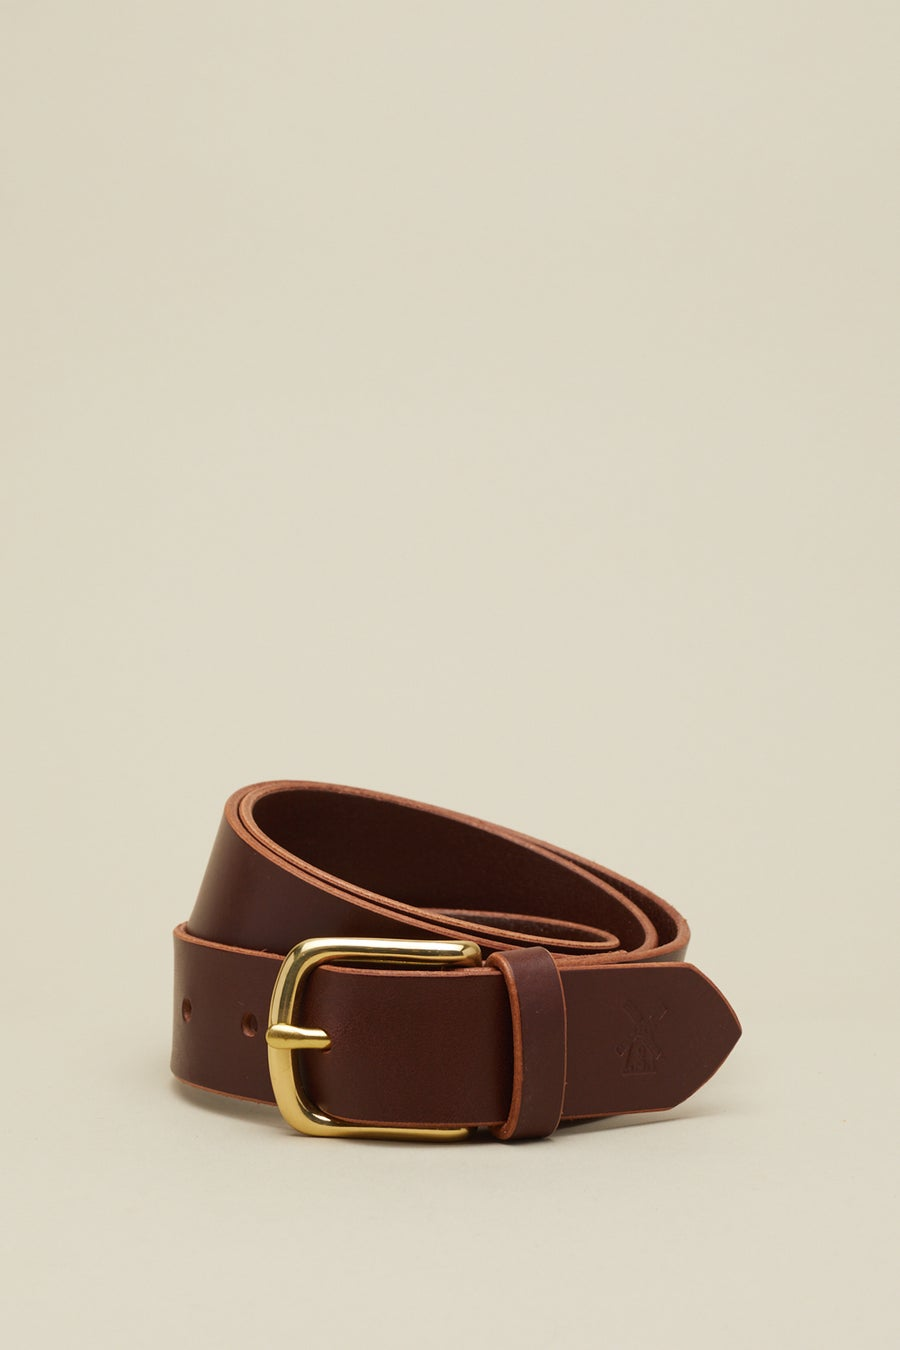 Image of Classic Buckle in Chestnut